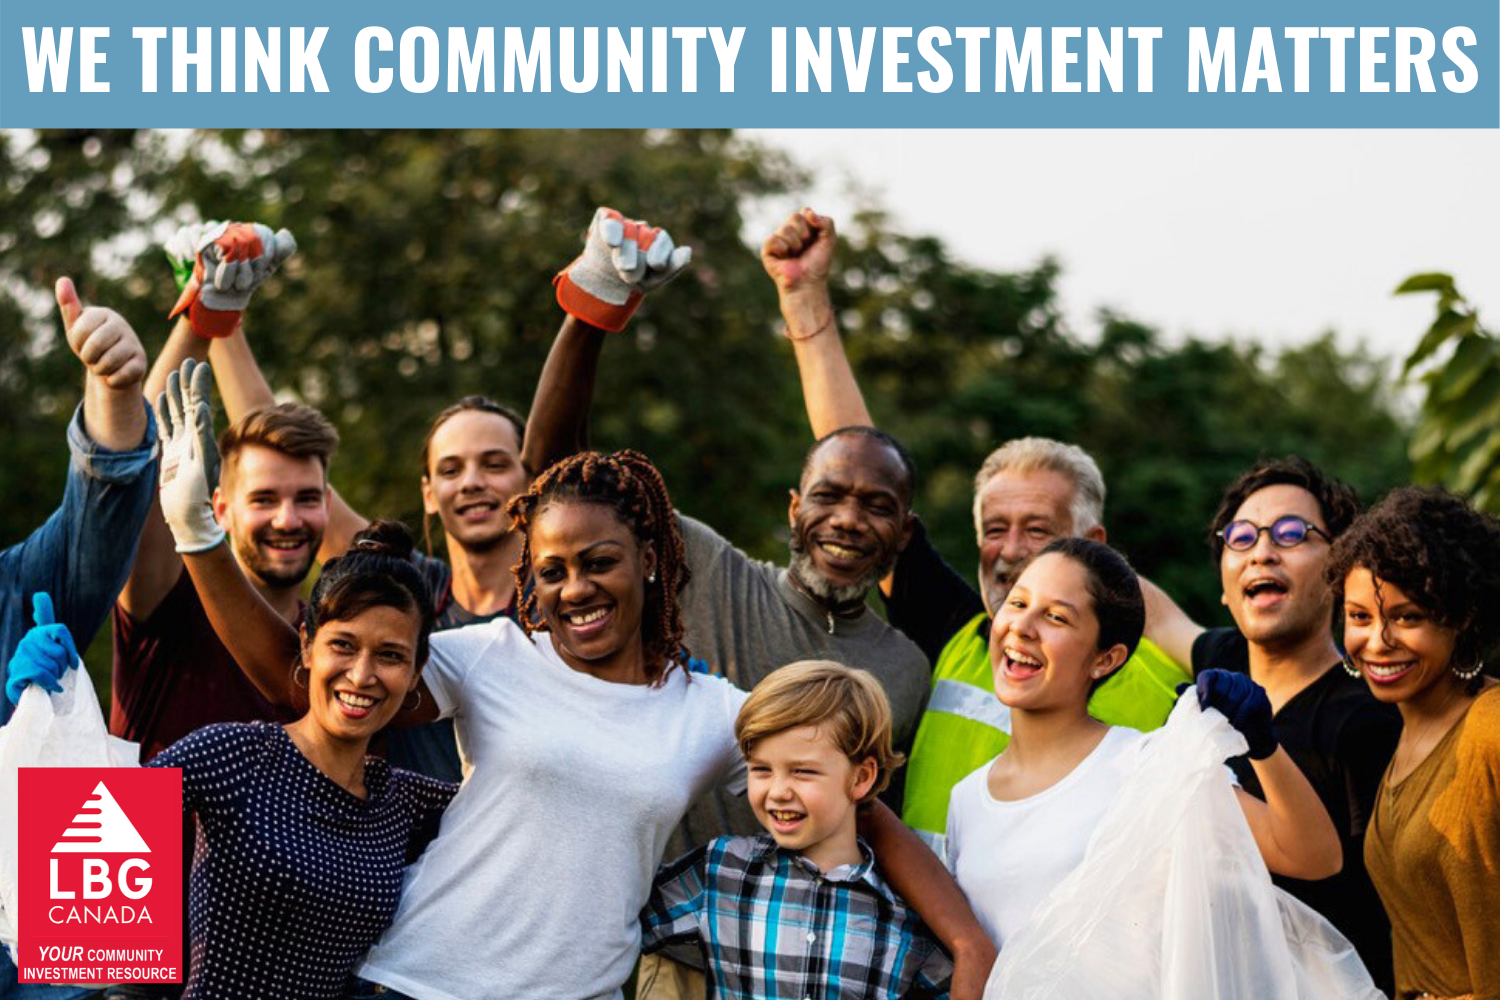 ***Spoiler Alert*** We Think Community Investment Matters